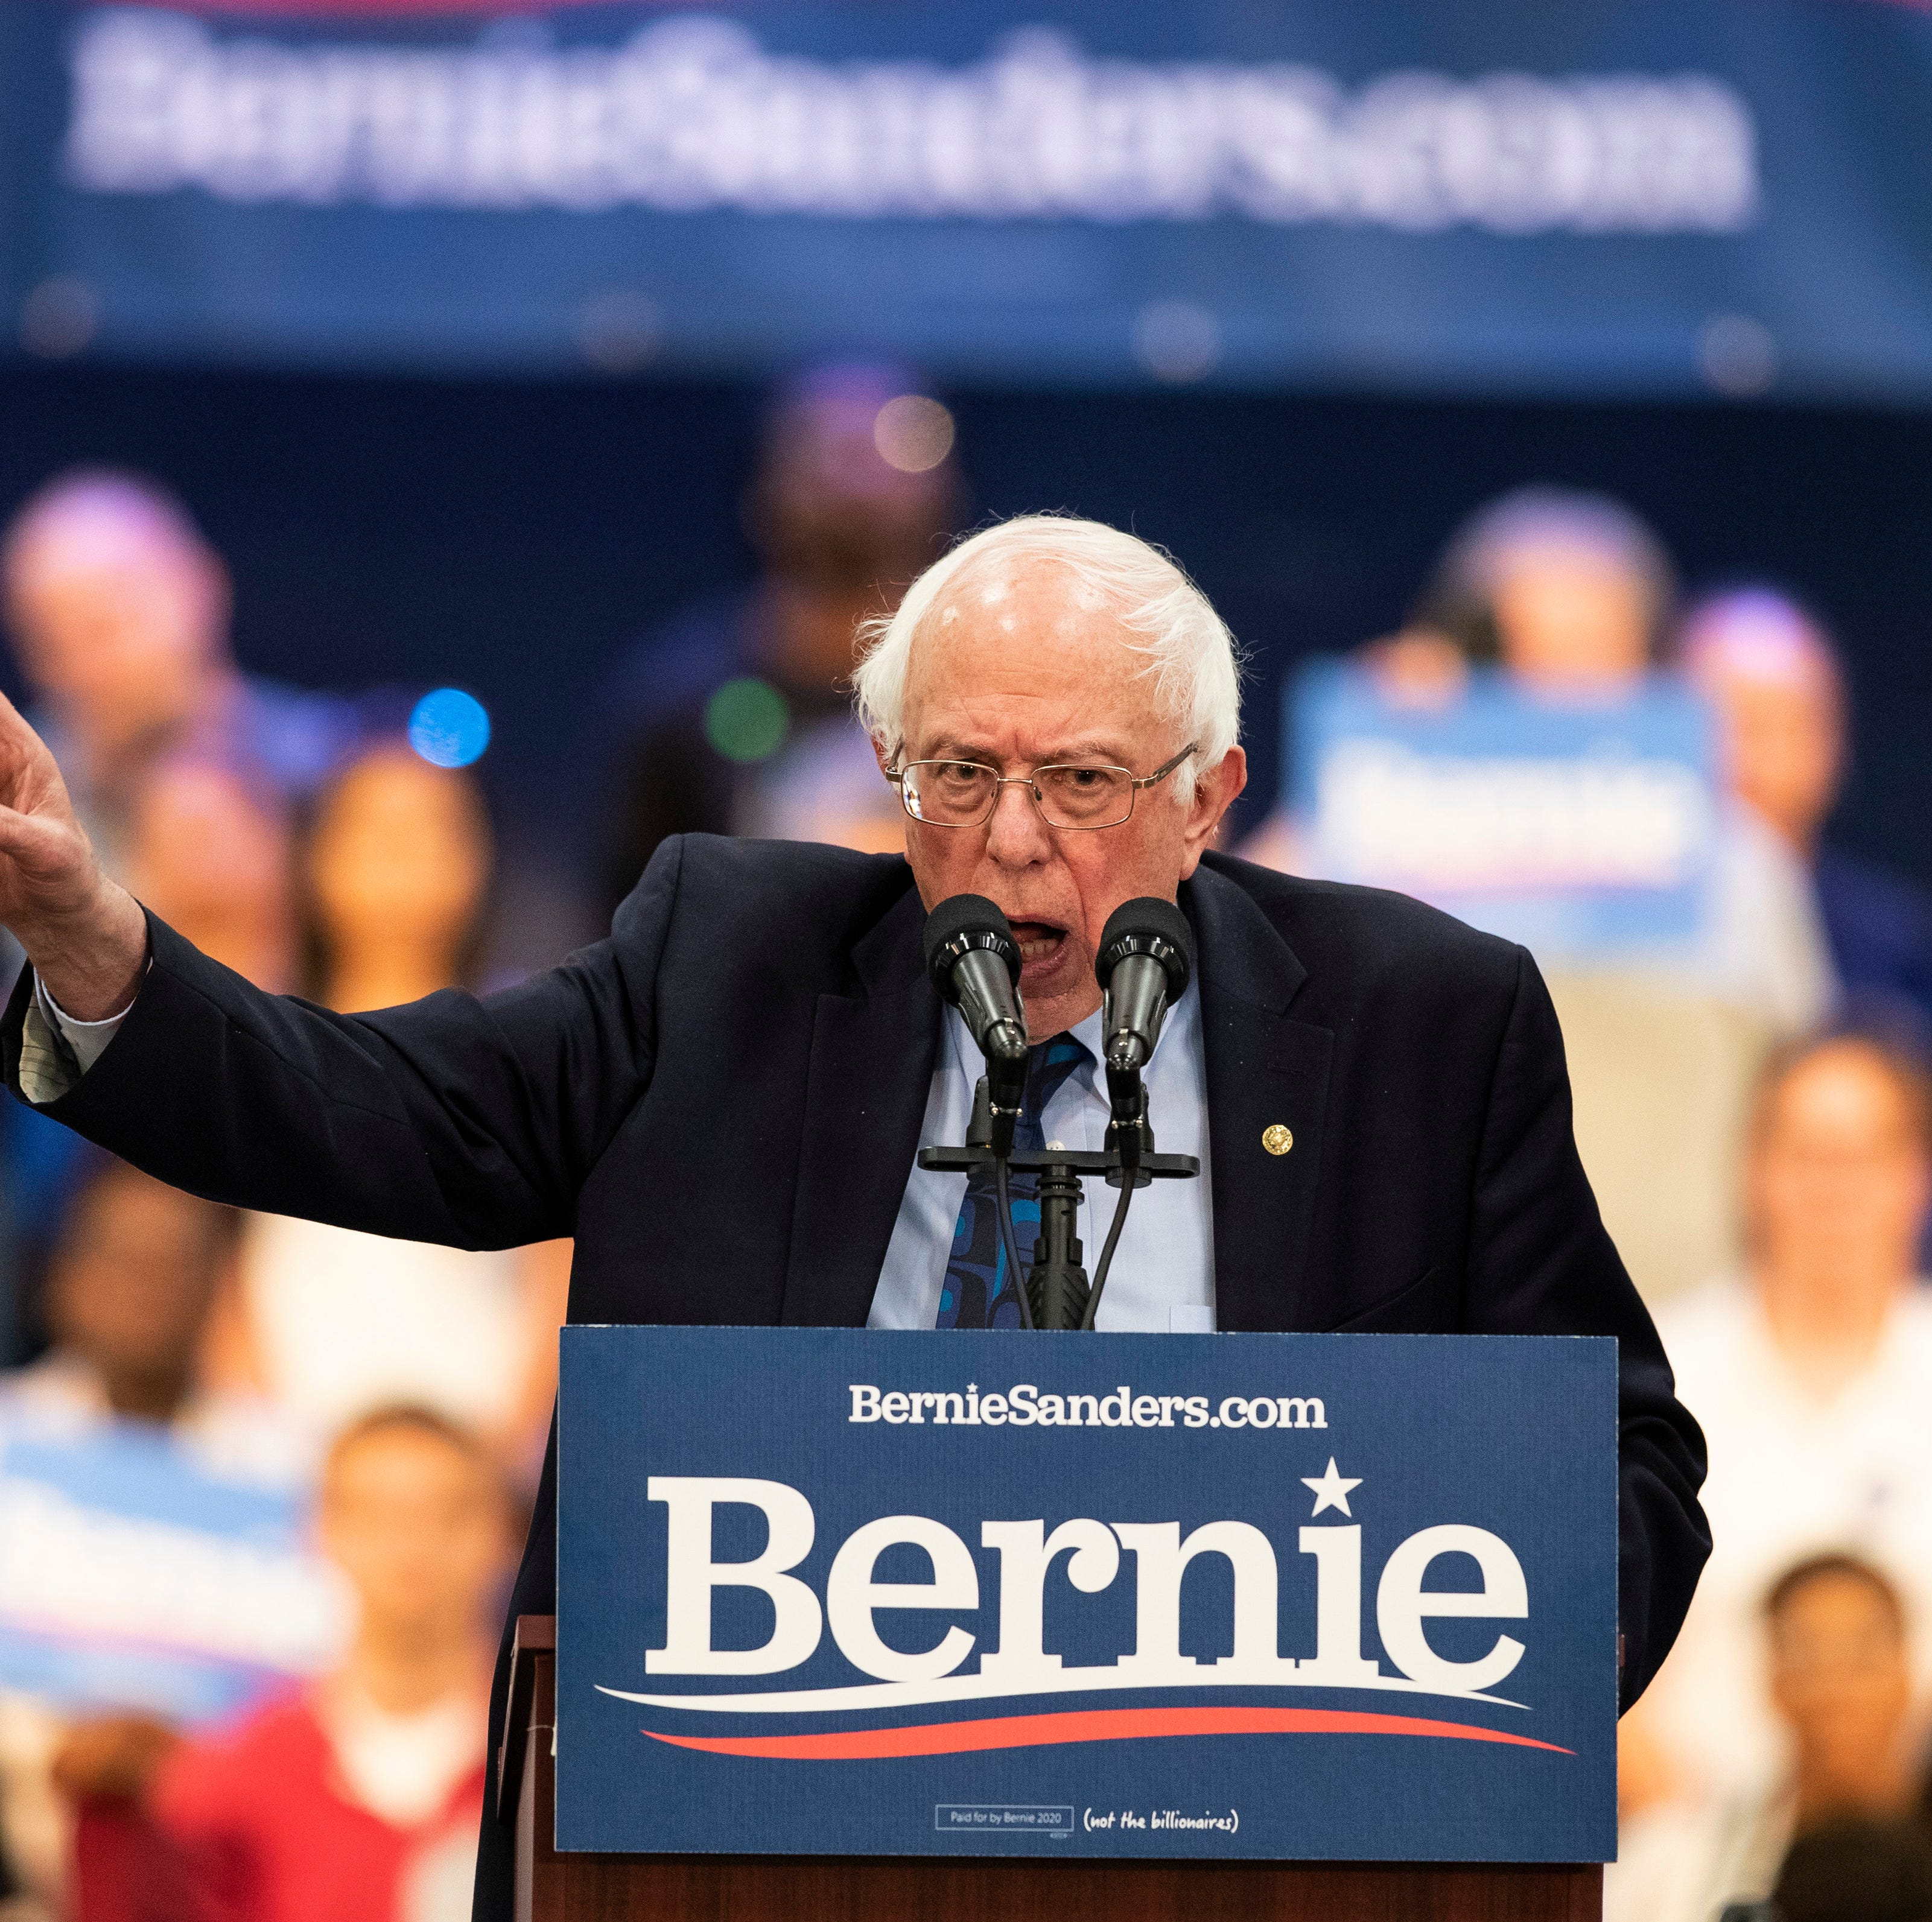 Bernie Sanders to hold first Vermont 2020 campaign rally in Montpelier